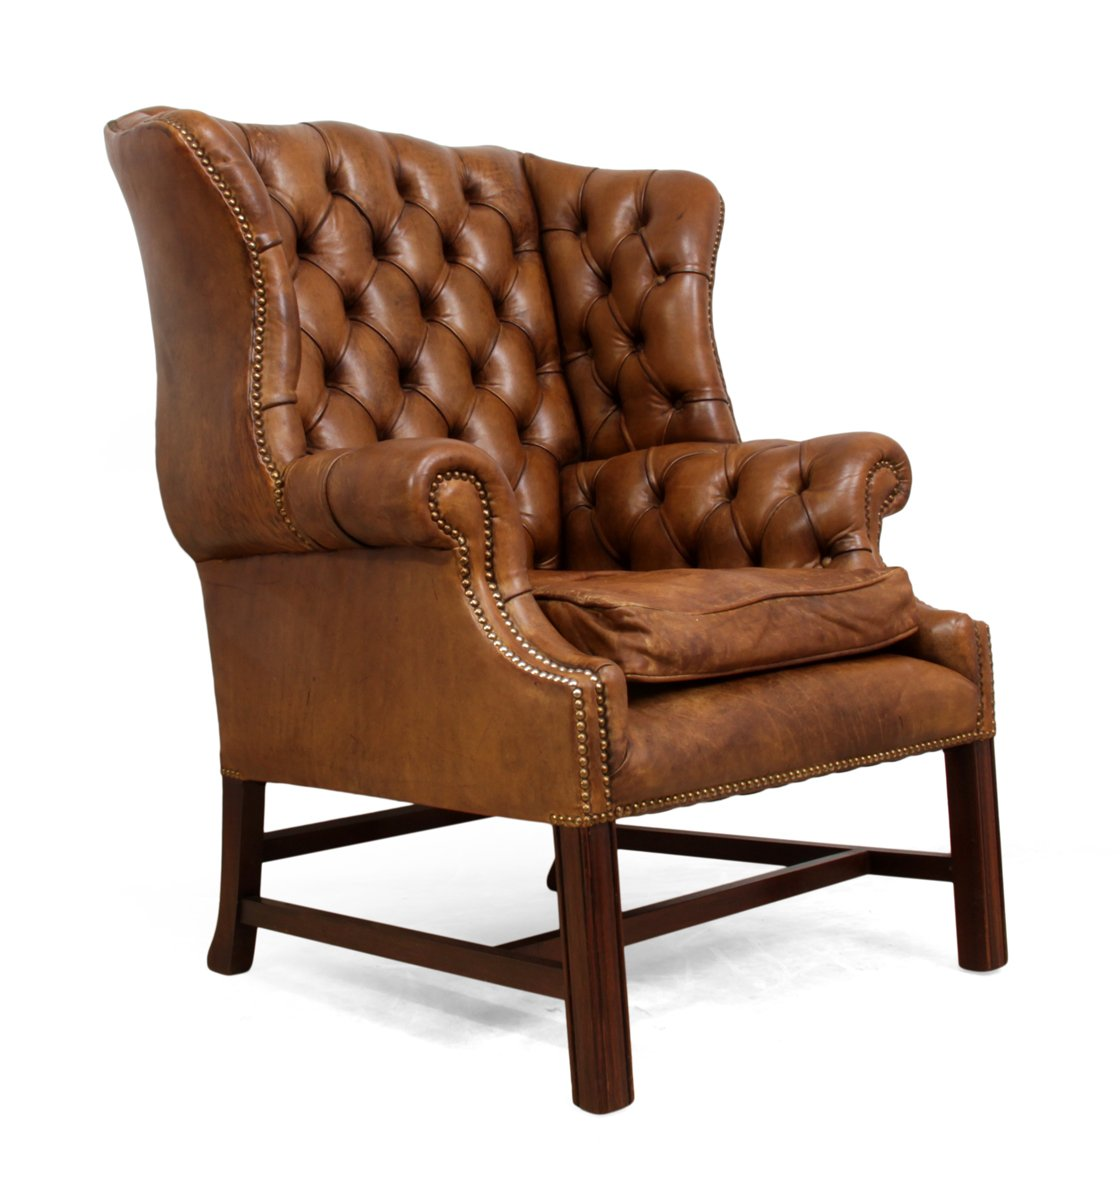 Midcentury Chairs Mid Century Leather Wingback Chair For Sale At Pamono